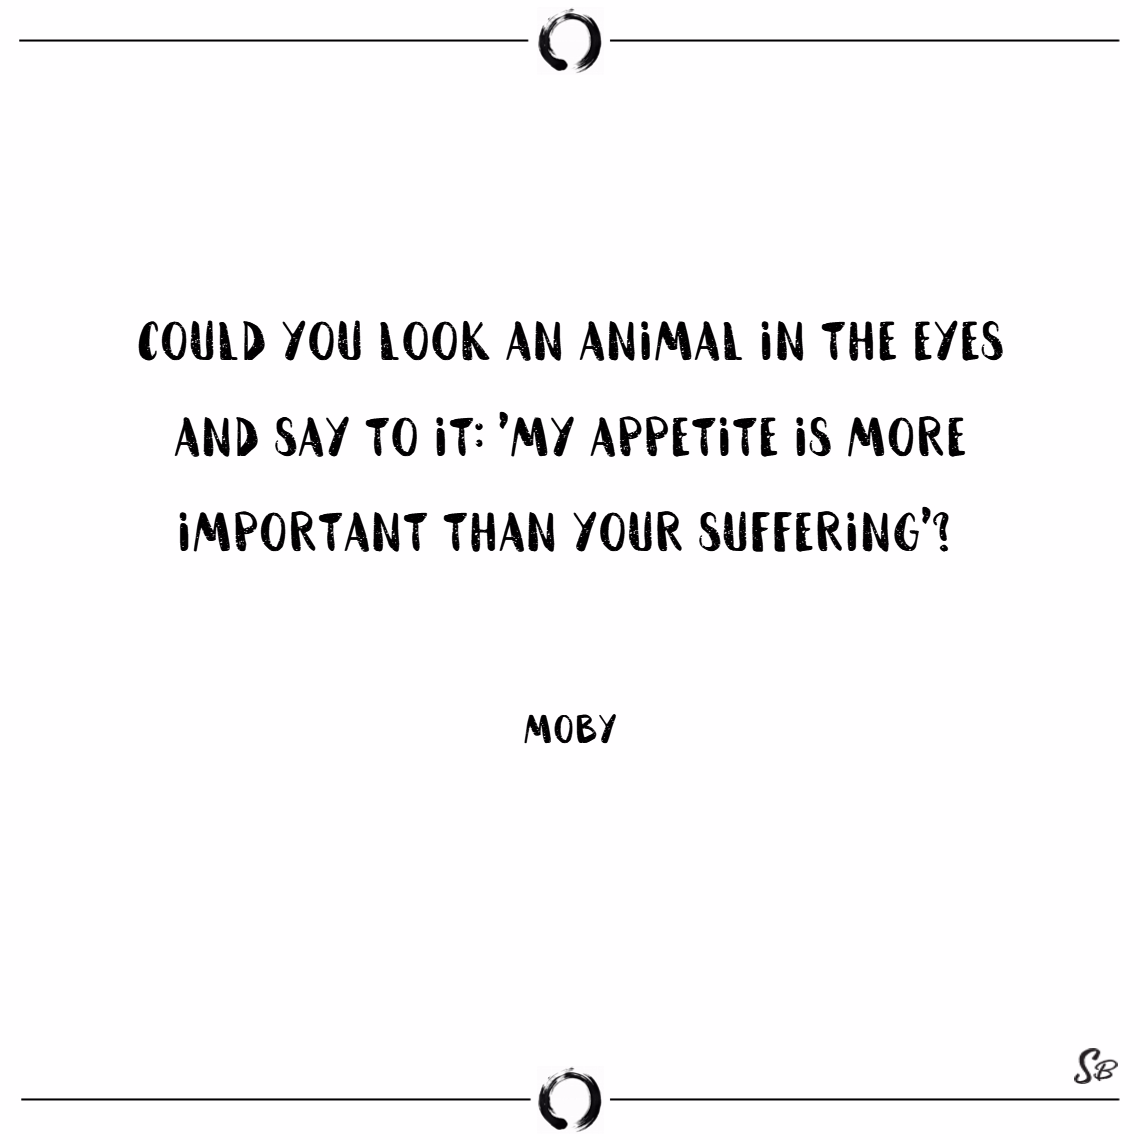 Could you look an animal in the eyes and say to it, 'my appetite is more important than your suffering' – moby